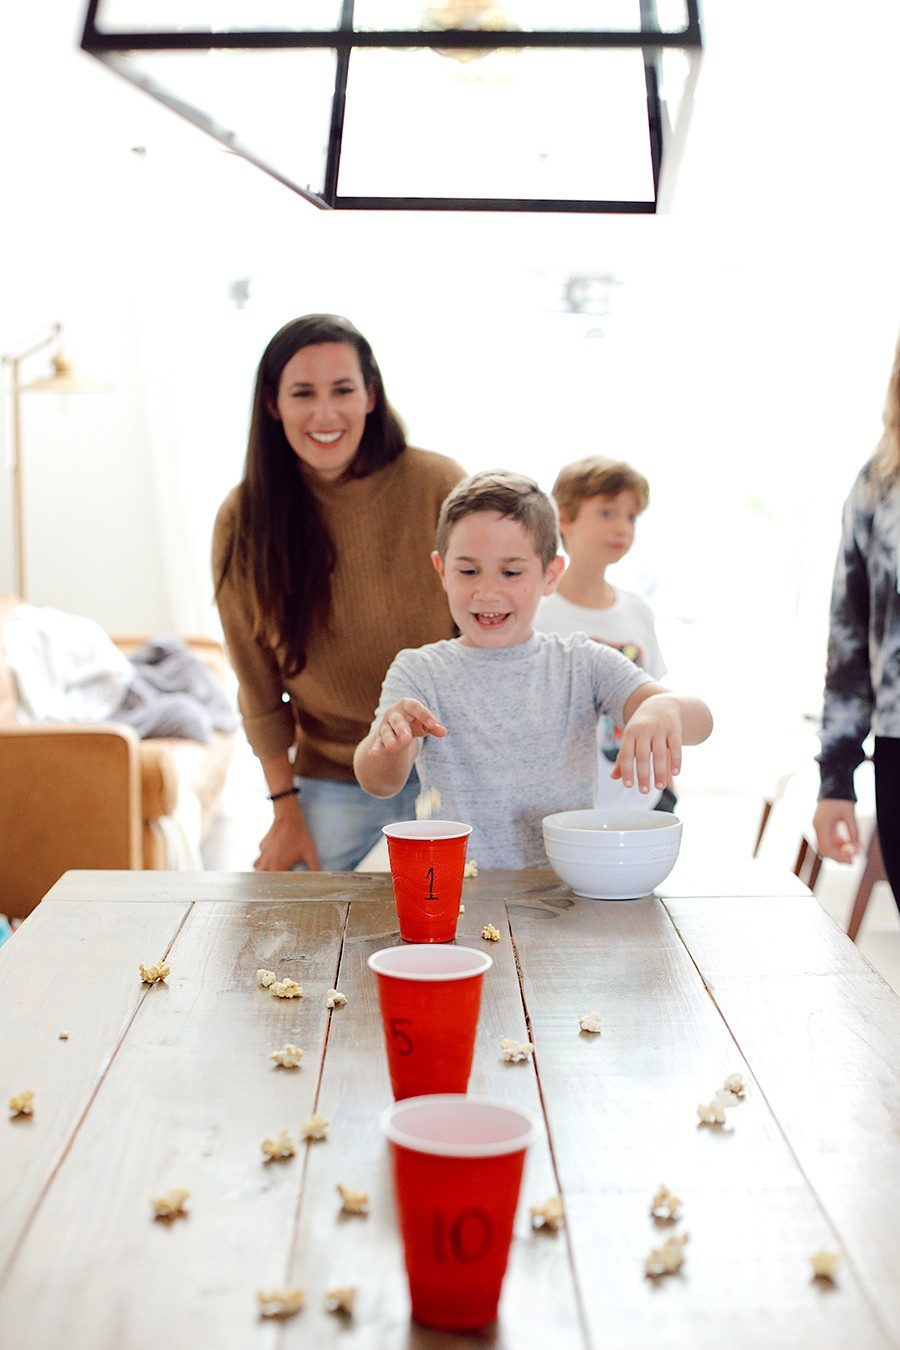 Popcorn toss and more fun popcorn games for family game night!